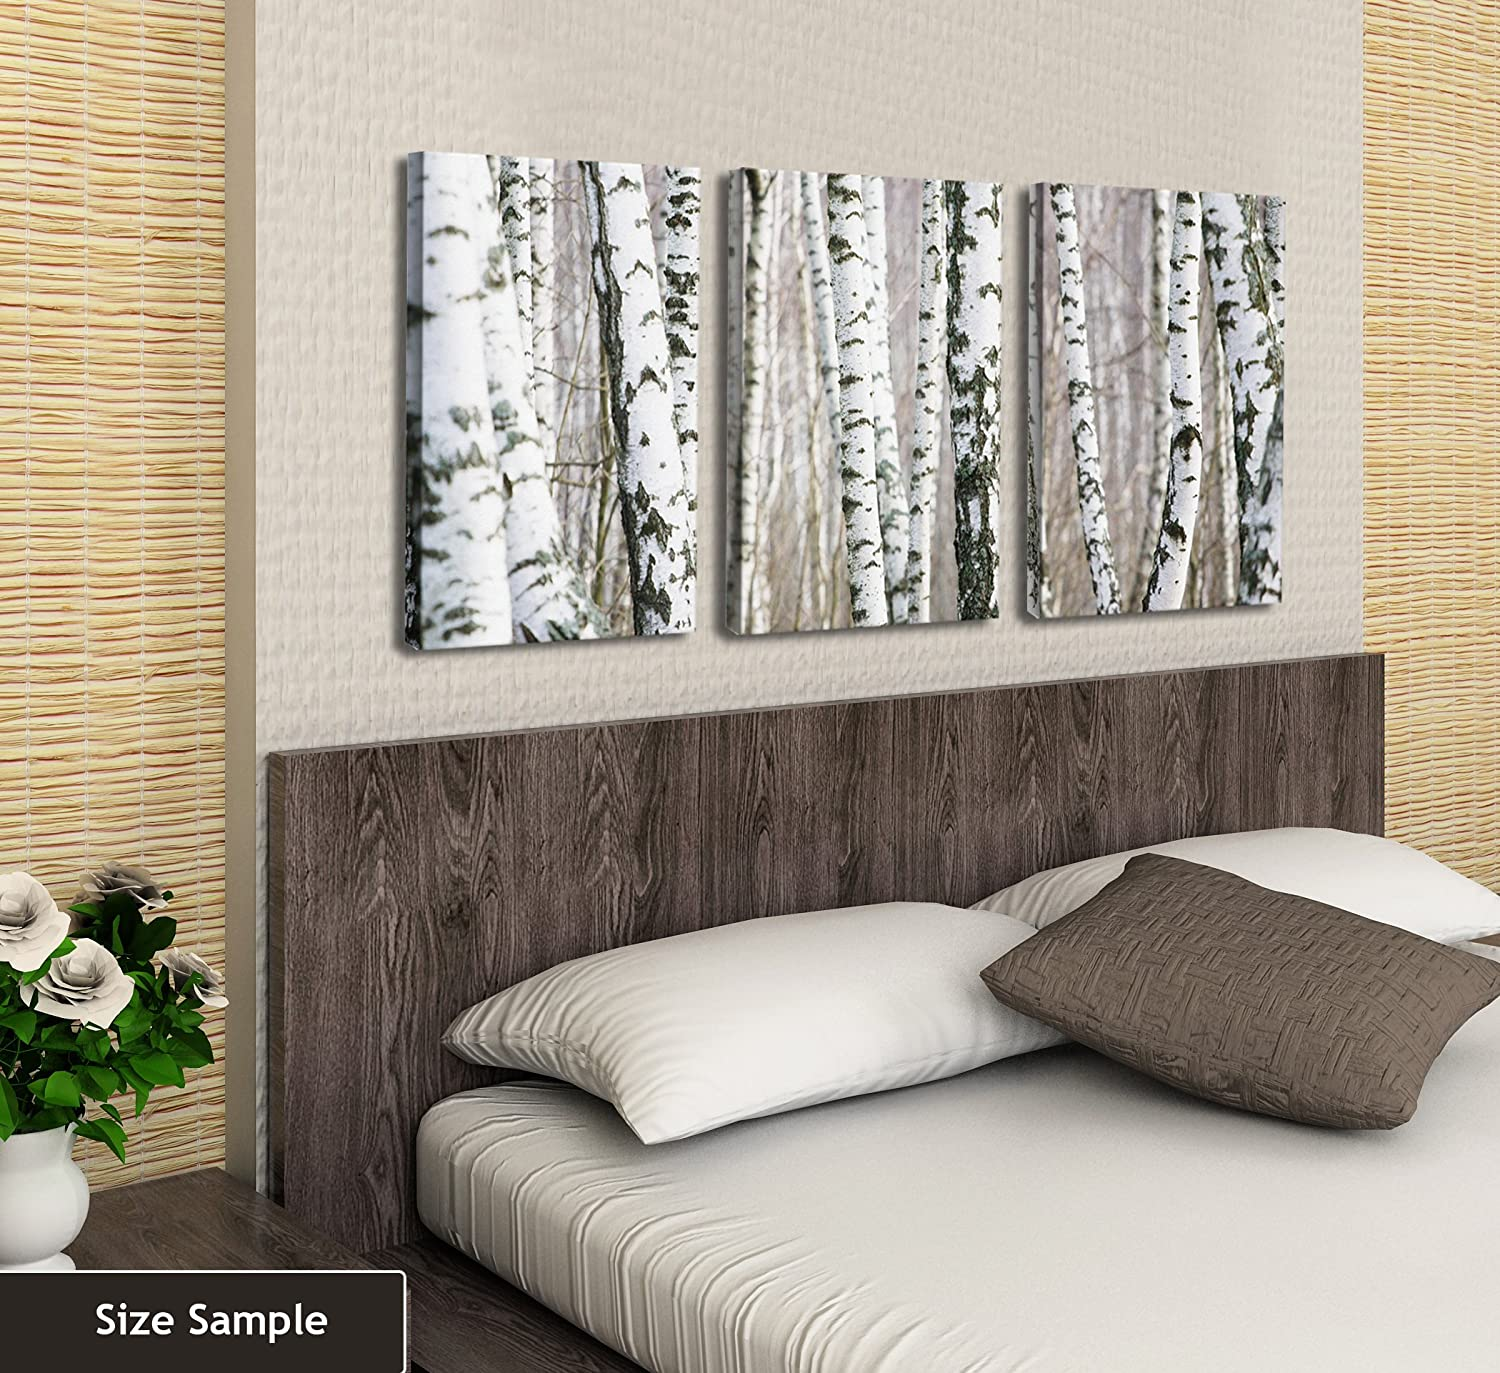 JP London CNVT4019 Gallery Wrap Canvas 2In Thick Heavyweight Canvas Triptych Credit River Autumn Nature Stream Forest 3 Panel Wall Art At 54In Wide By 24In High